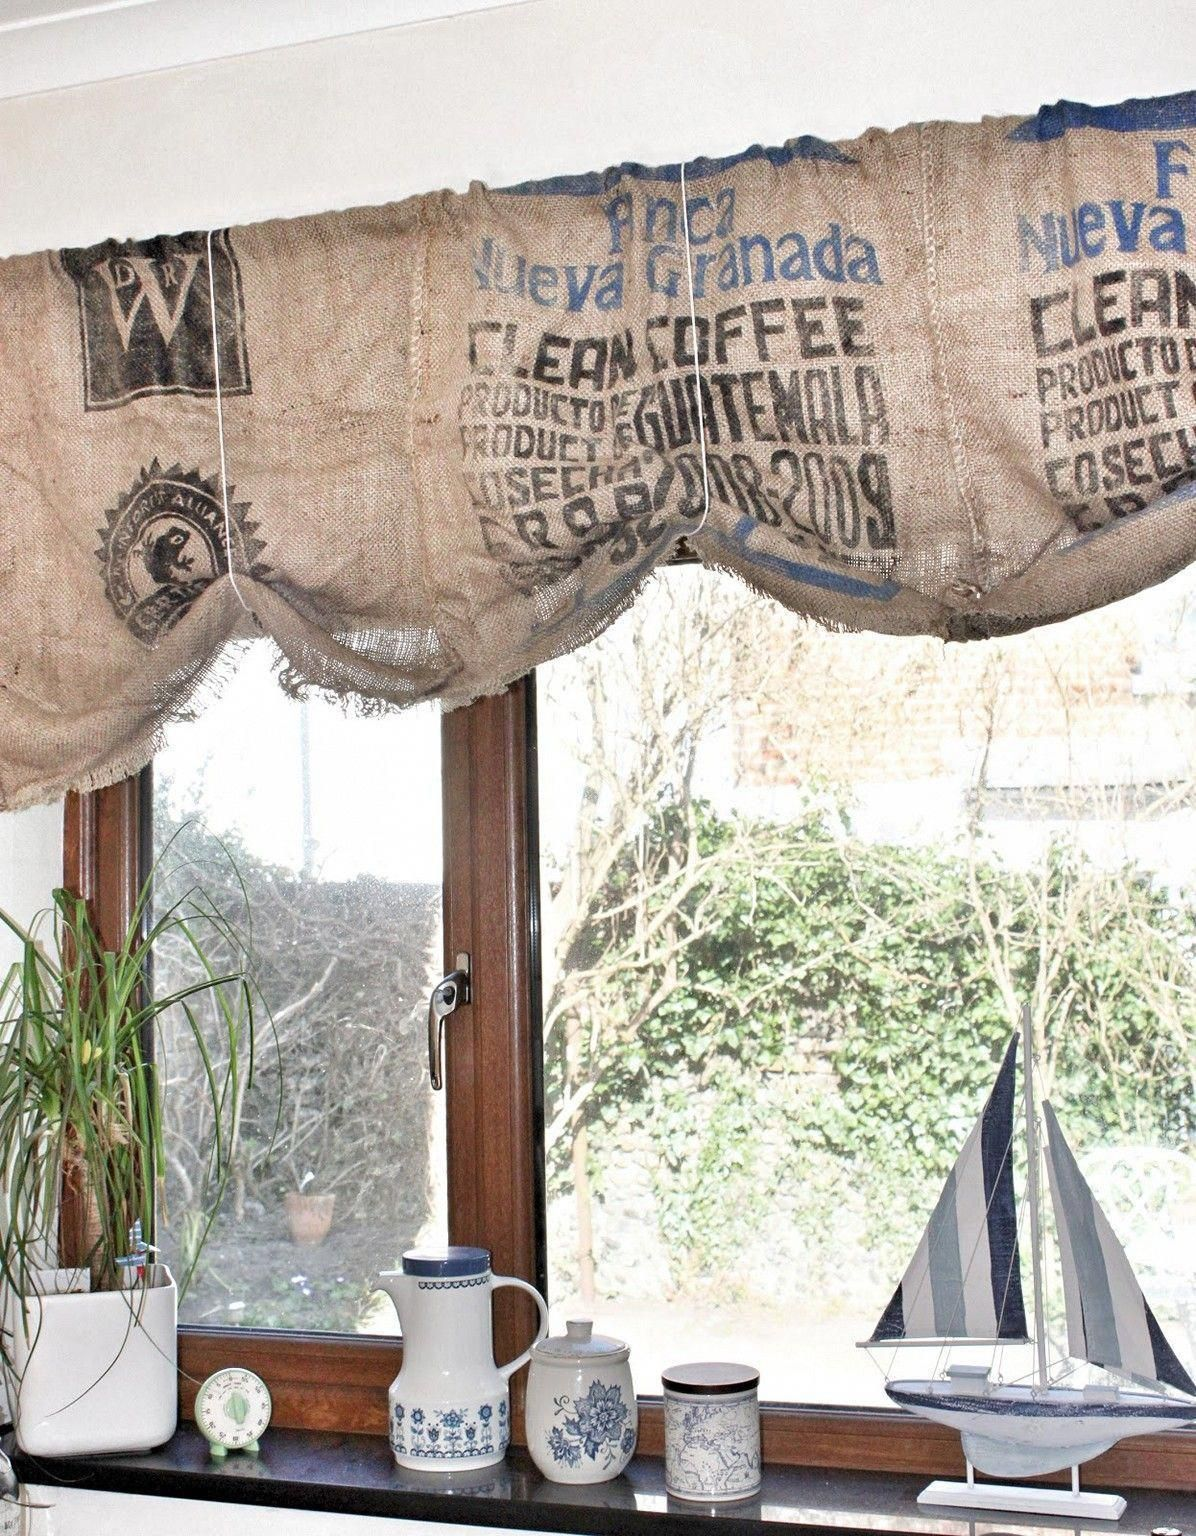 Coffee Themed Kitchen Decor Curtains Coffeethemedkitchendecor Kitchensigndecor Tuscankitchendec Tuscan Kitchen Tuscan Decorating Kitchen Decor Themes Coffee